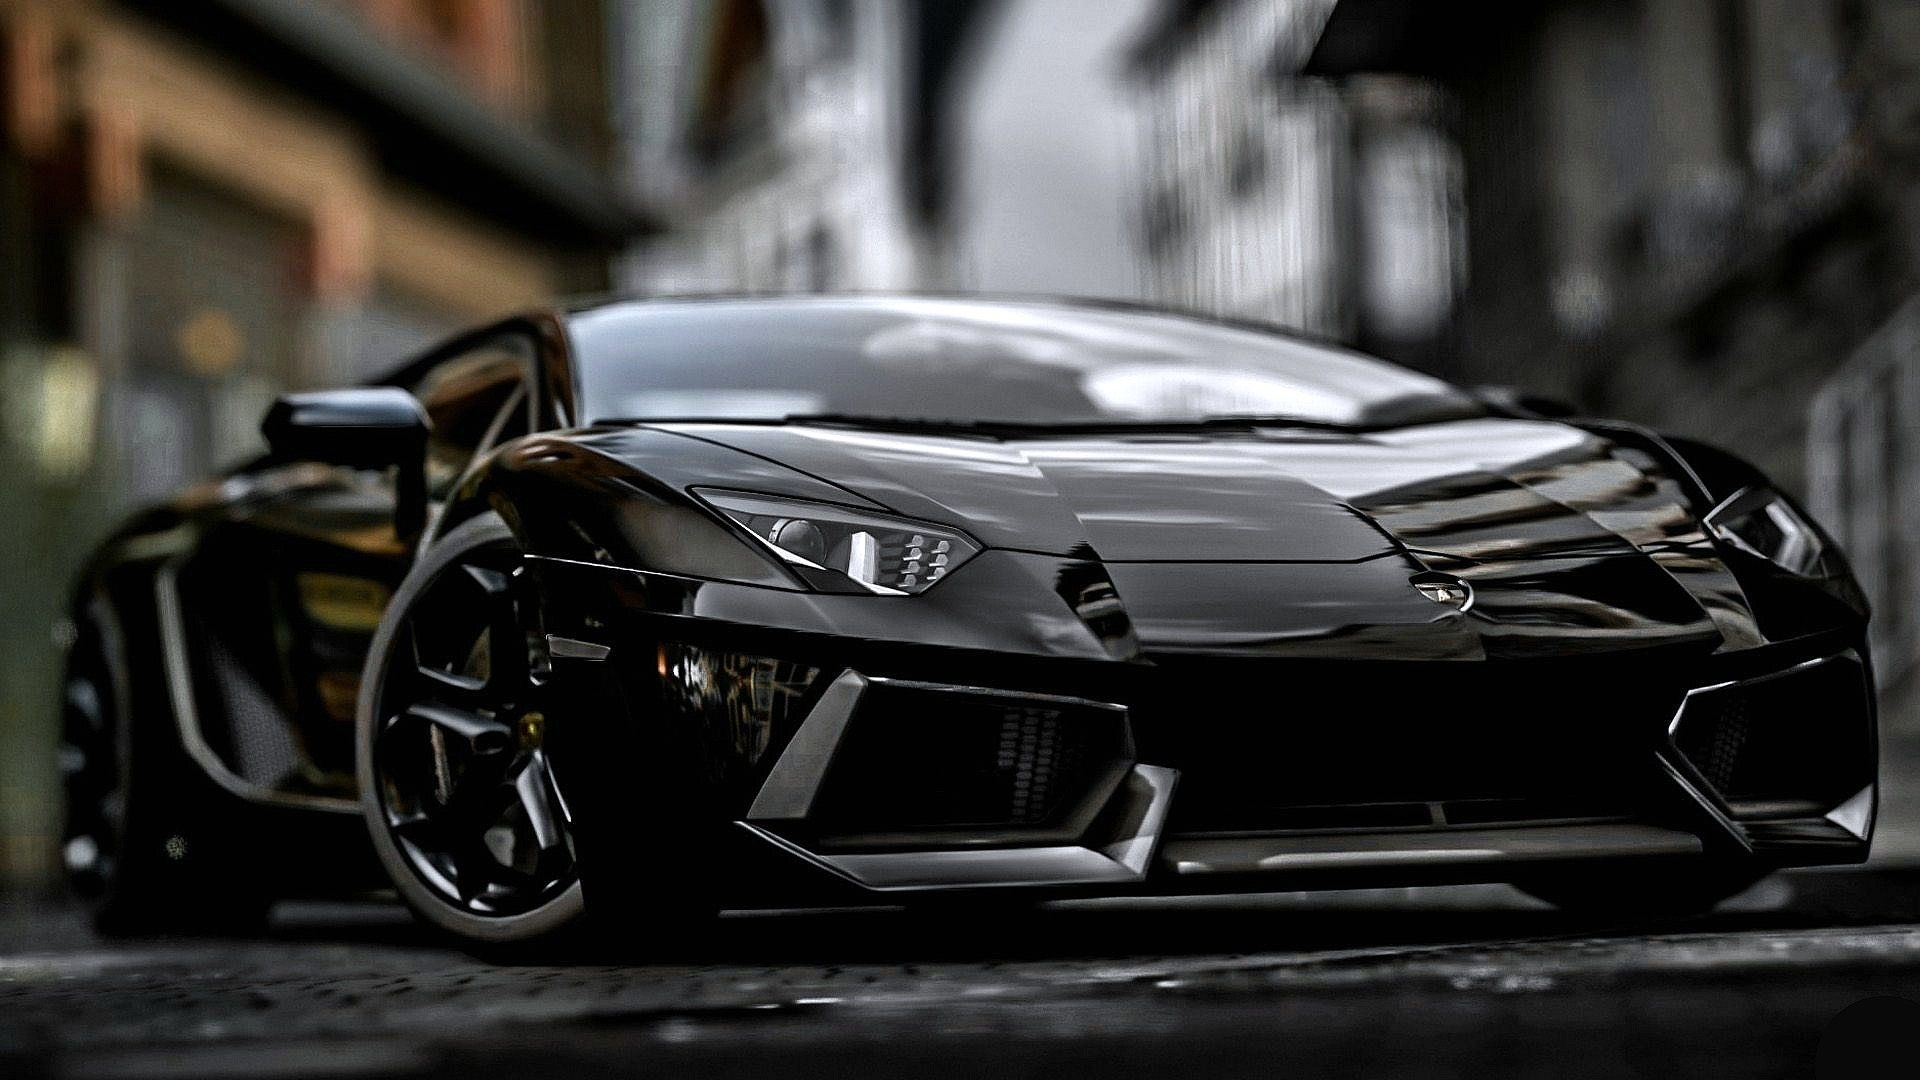 10 New Lamborghini Hd Wallpapers 1080P FULL HD 1080p For PC Background